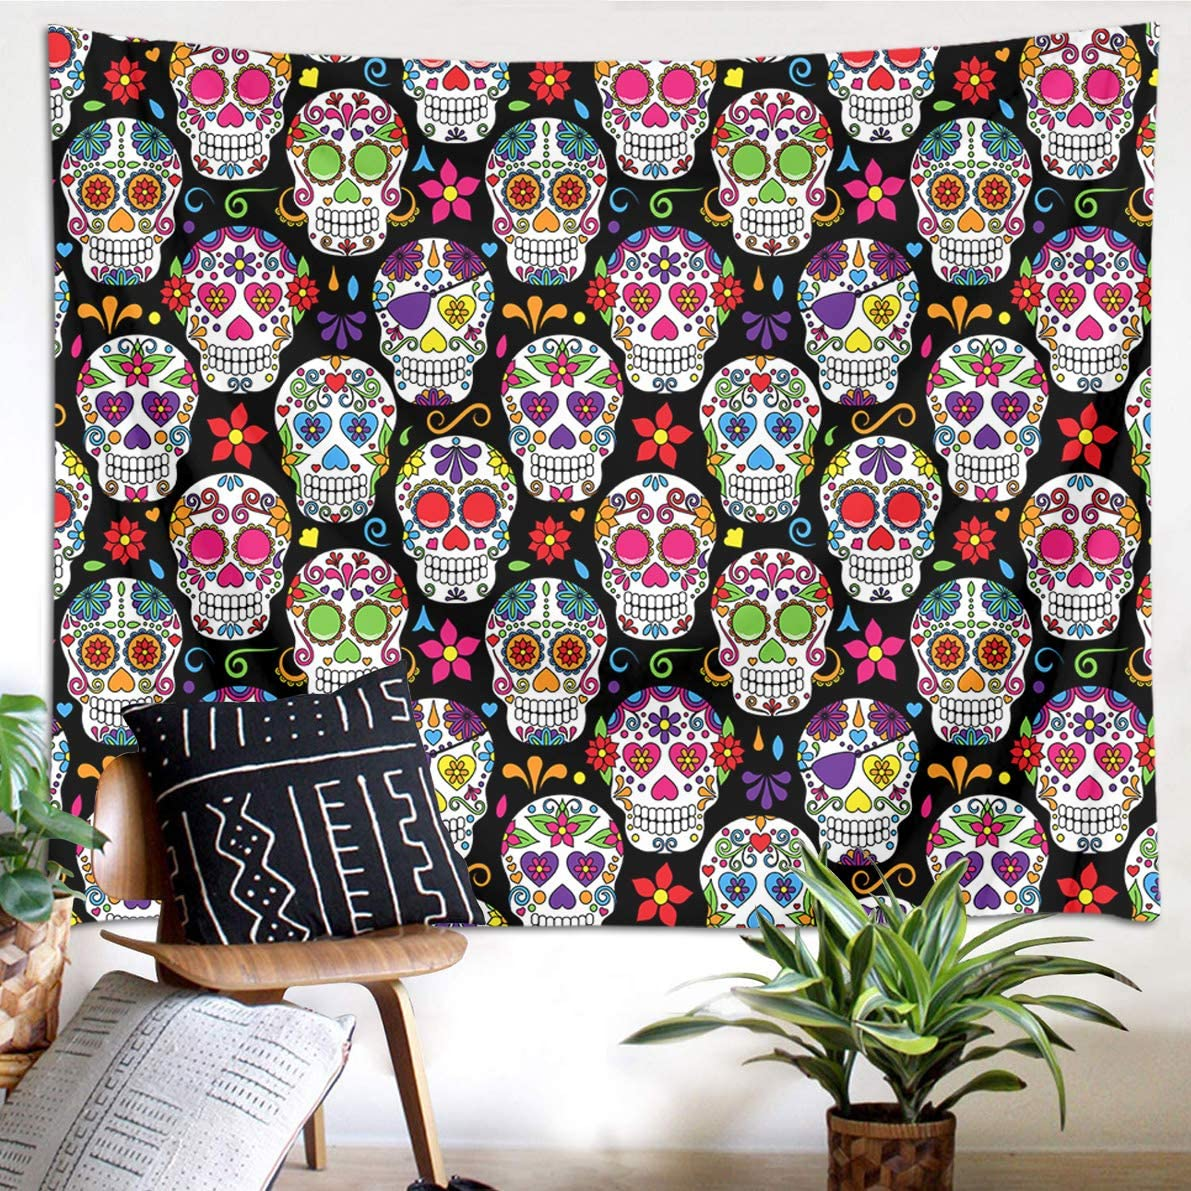 LB Sugar Skull Tapestry Day of The Dead Theme Hippie Bohemian Skulls with Flowers Funny Mexican Wall Tapestry for Bedroom Living Room Home Decor 93 Wx71 L